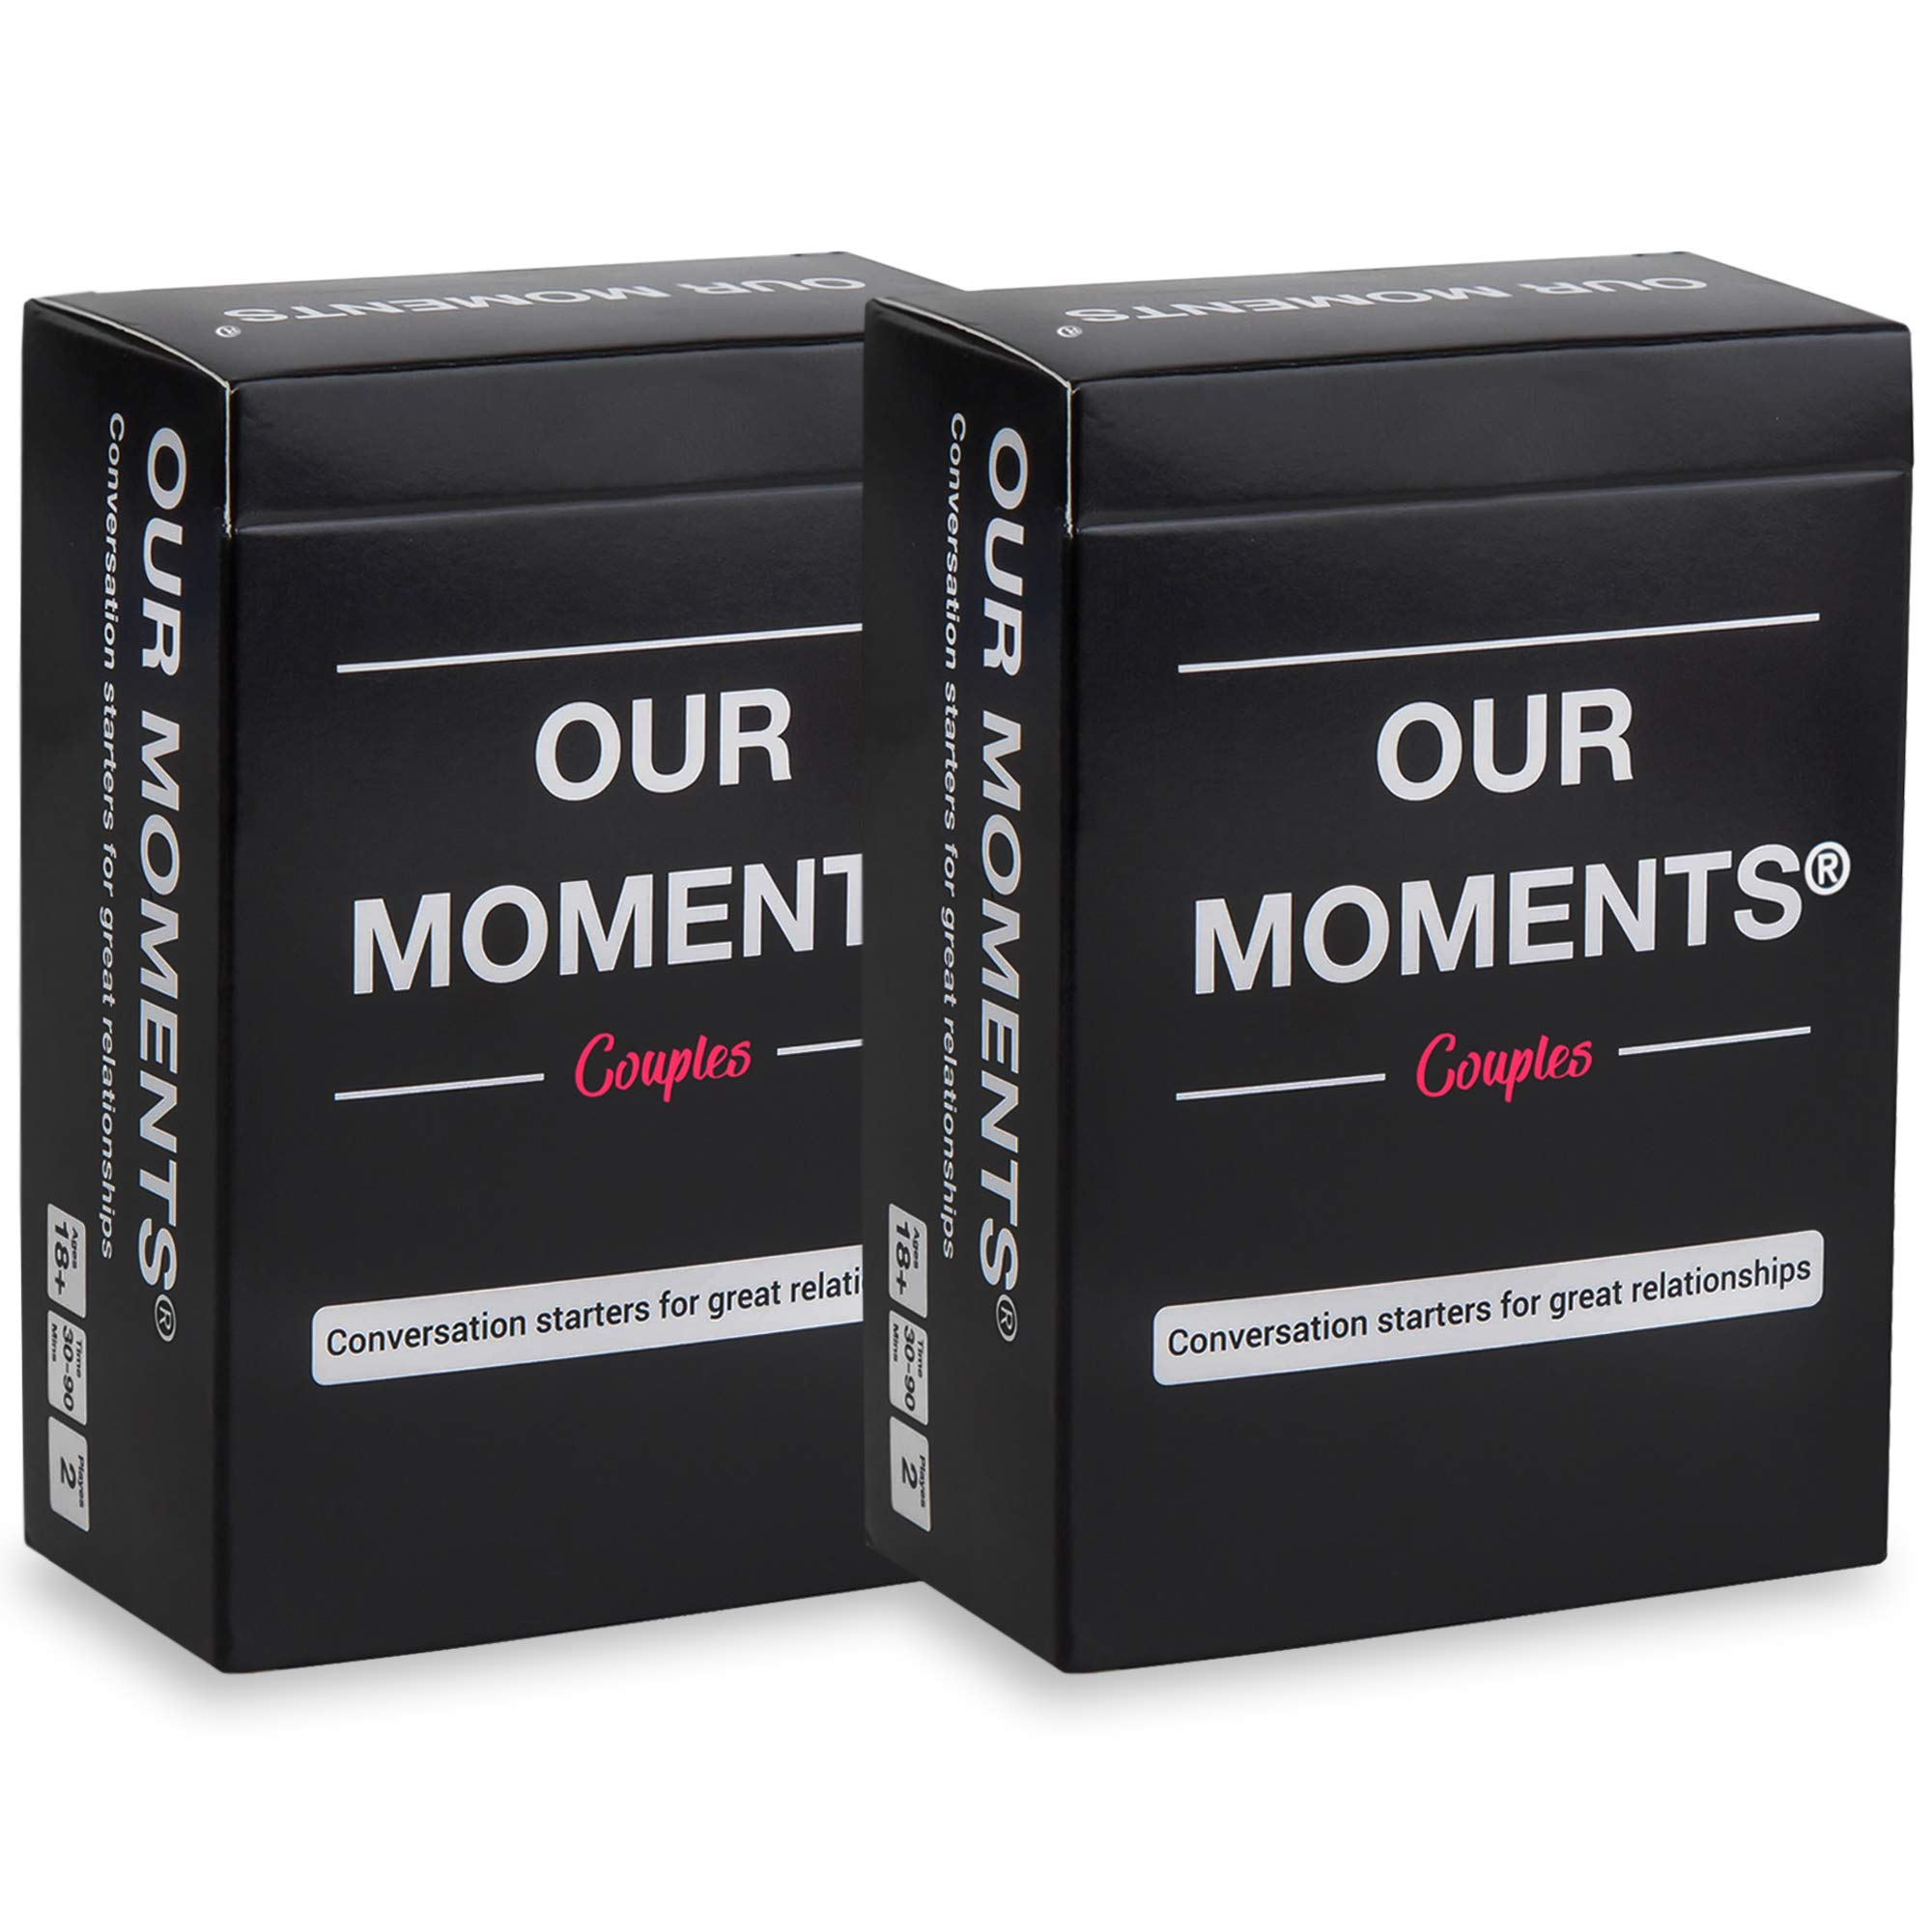 OUR MOMENTS Couples (Bundle of 2): 100 Thought Provoking Conversation Starters for Great Relationships - Fun Conversation Cards Game for Couples by OUR MOMENTS